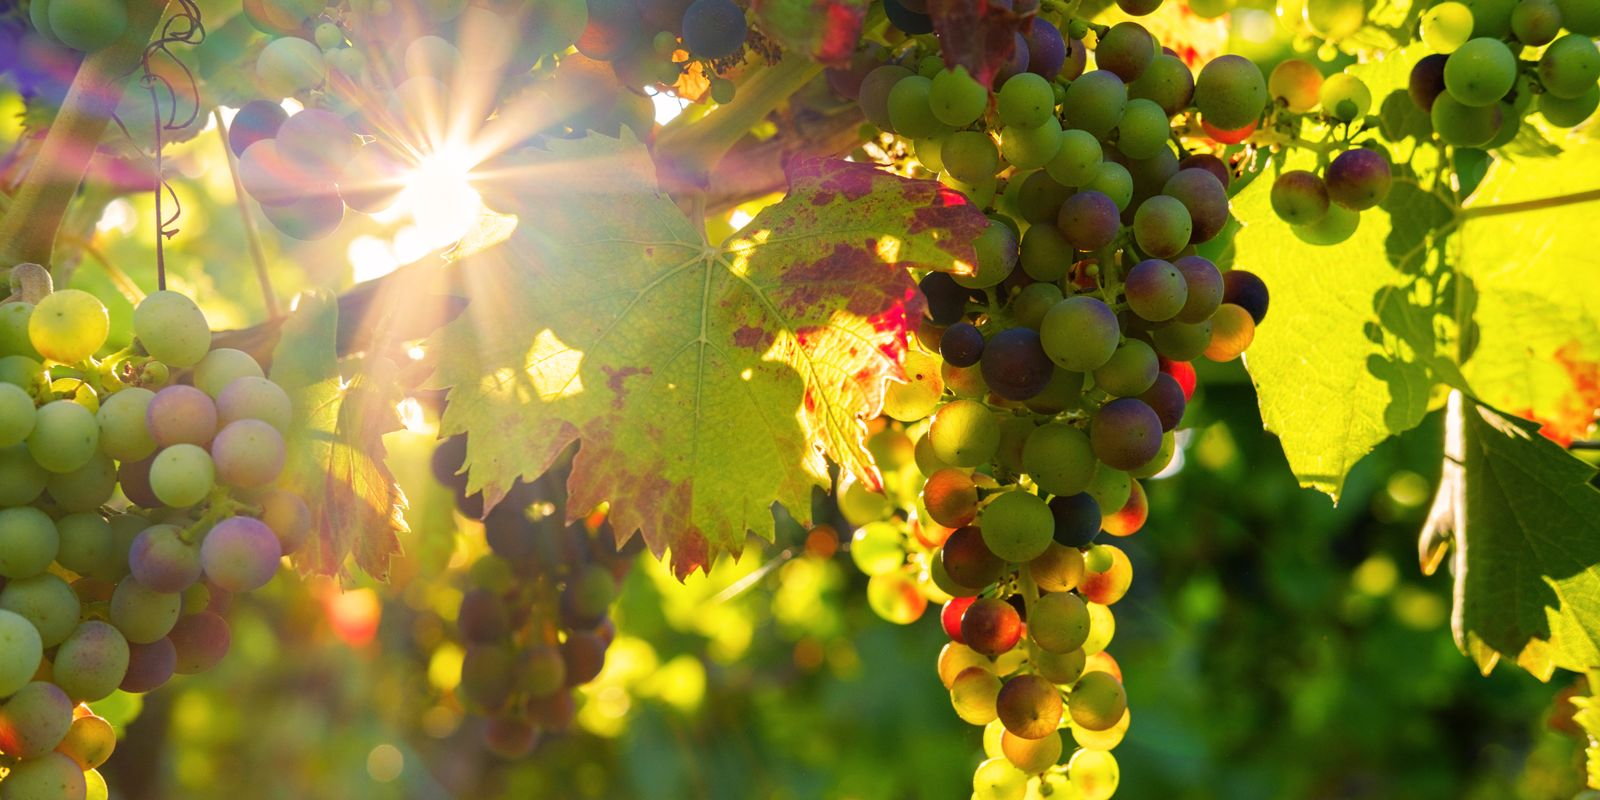 pixabay: grapes ©Bru-nO